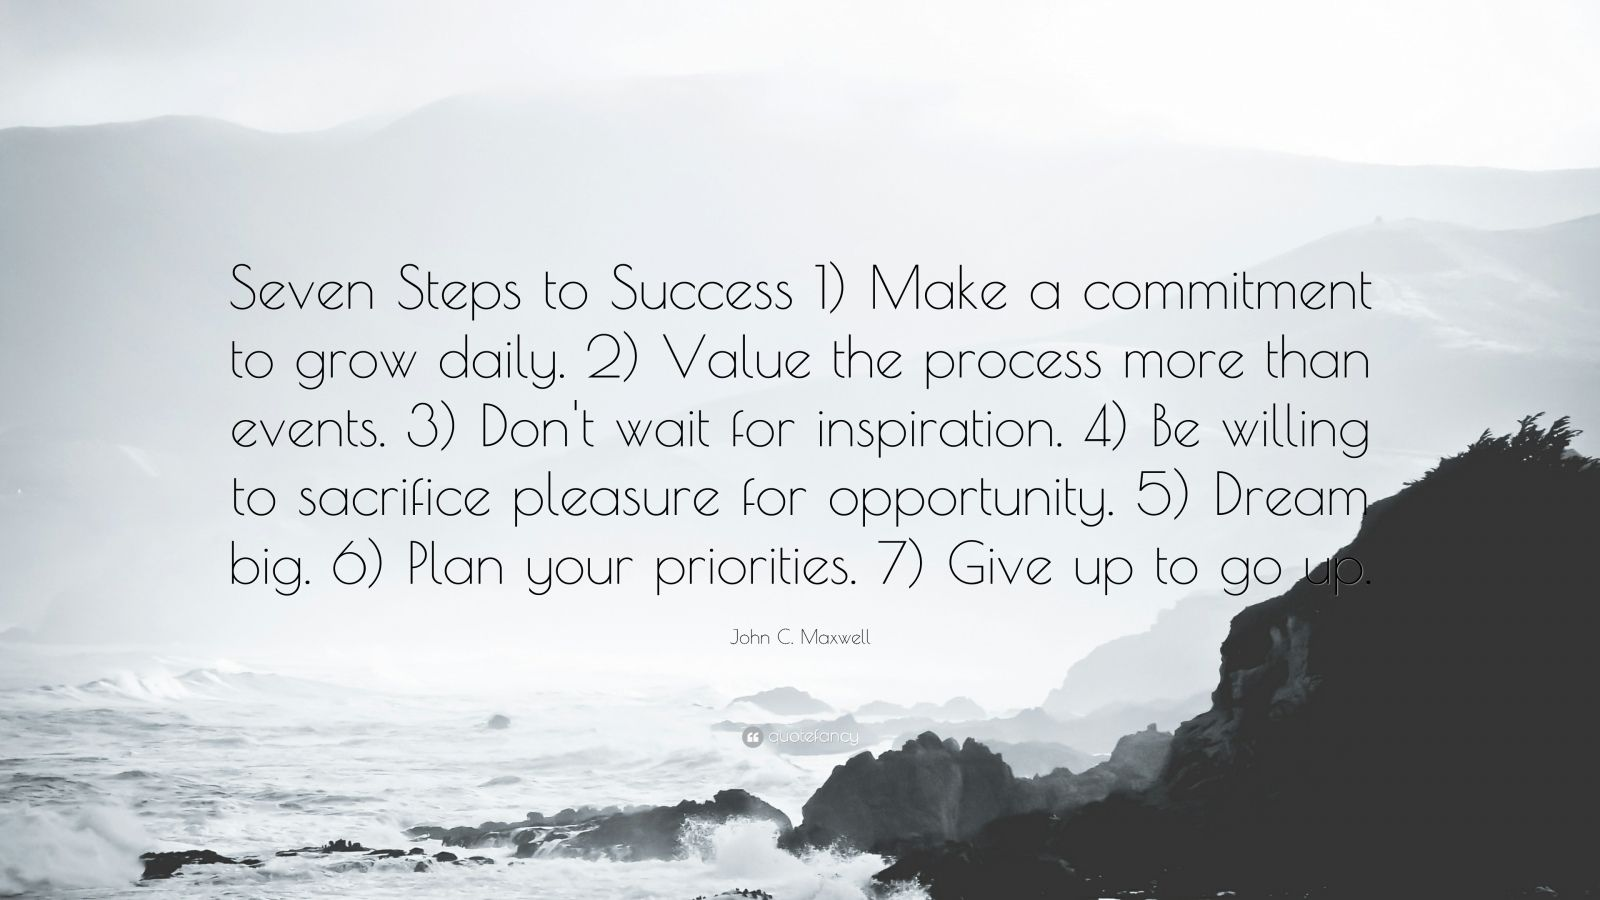 "Success Quotes: ""Seven Steps to Success 1) Make a commitment to grow daily. 2) Value the process more than events. 3) Don't wait for inspiration. 4) Be willing to sacrifice pleasure for opportunity. 5) Dream big. 6) Plan your priorities. 7) Give up to go up."" — John C. Maxwell"